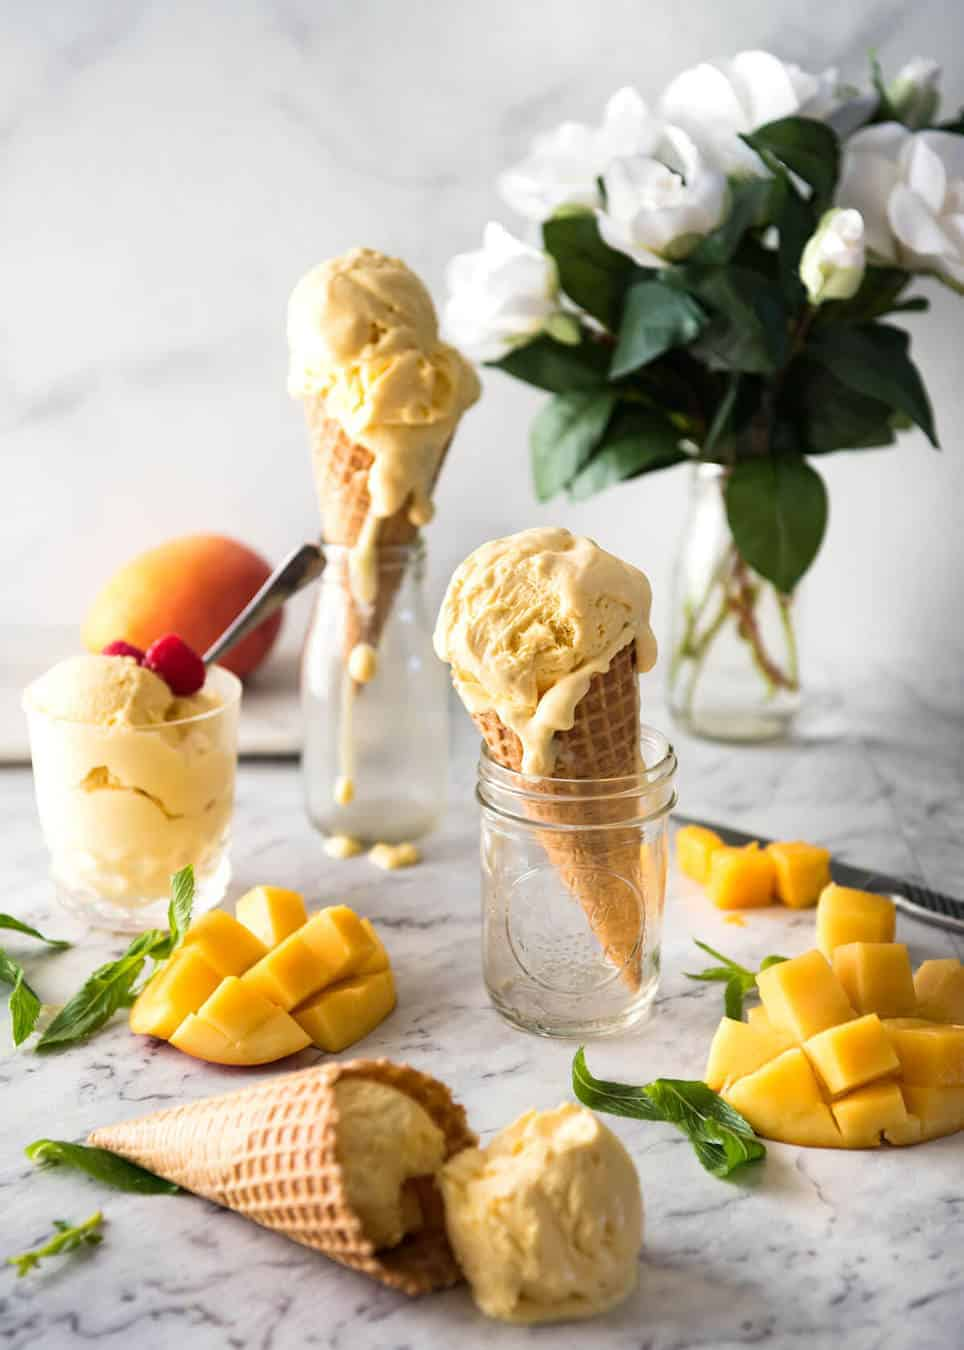 Homemade mango ice cream recipe no ice cream maker recipetin eats homemade mango ice cream in ice cream cones and in cups with cheeks of ccuart Image collections